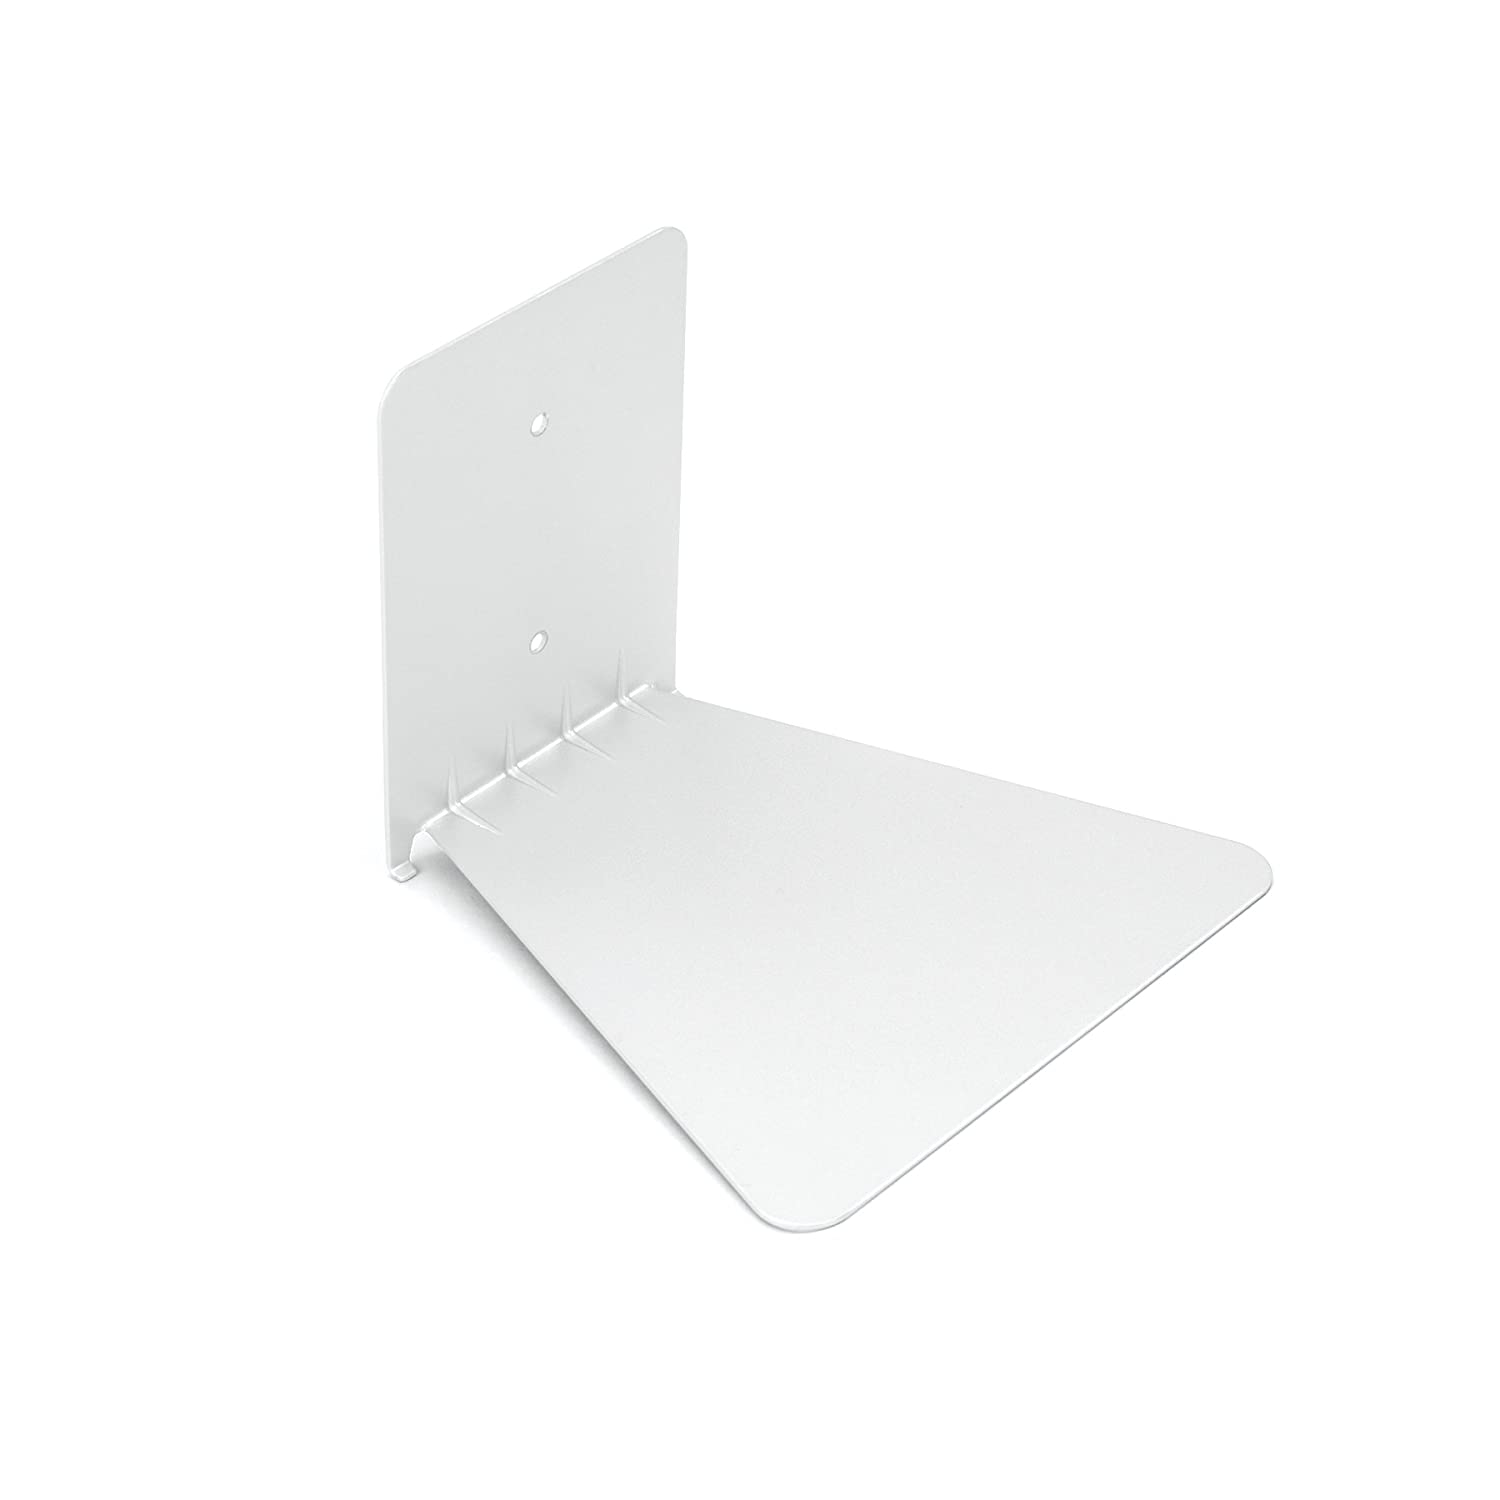 Amazon.com: Umbra Conceal Floating Bookshelf, Large, White: Home U0026 Kitchen